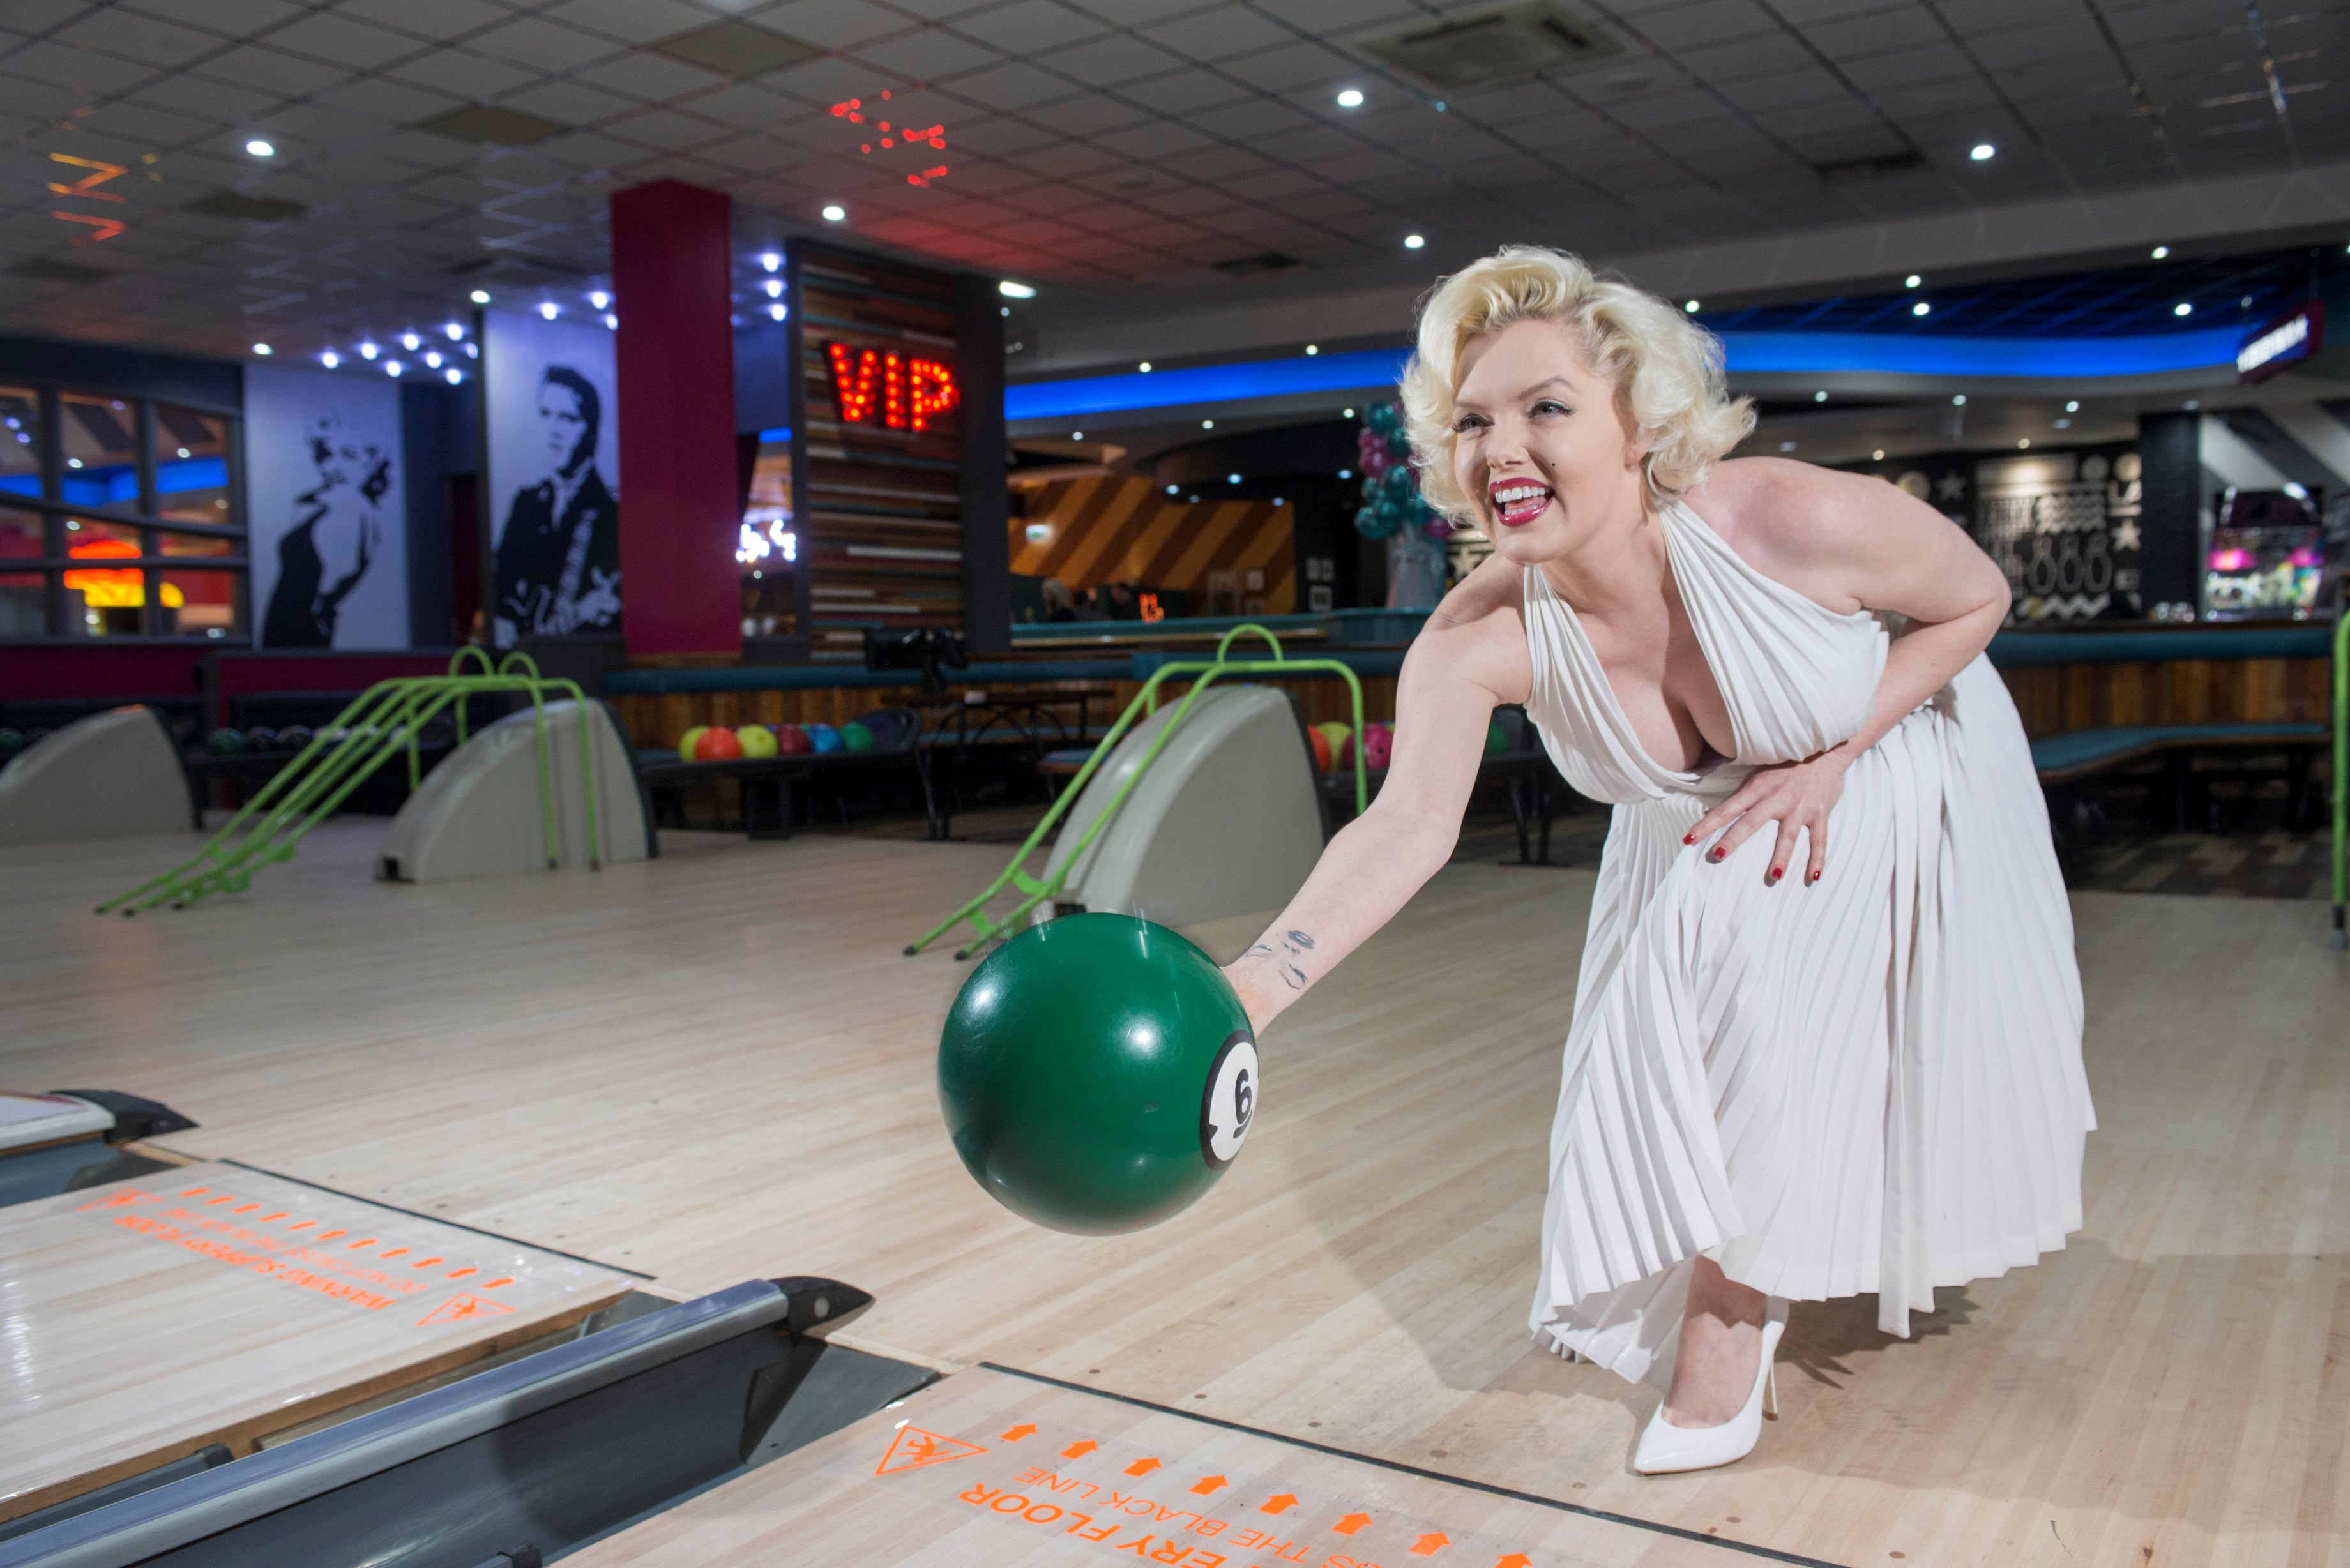 marilyn_bowls_the_first_ball_at_hollywood_bowl_cardigan_fields_following_a_500000_refurbishment_ii.jpg